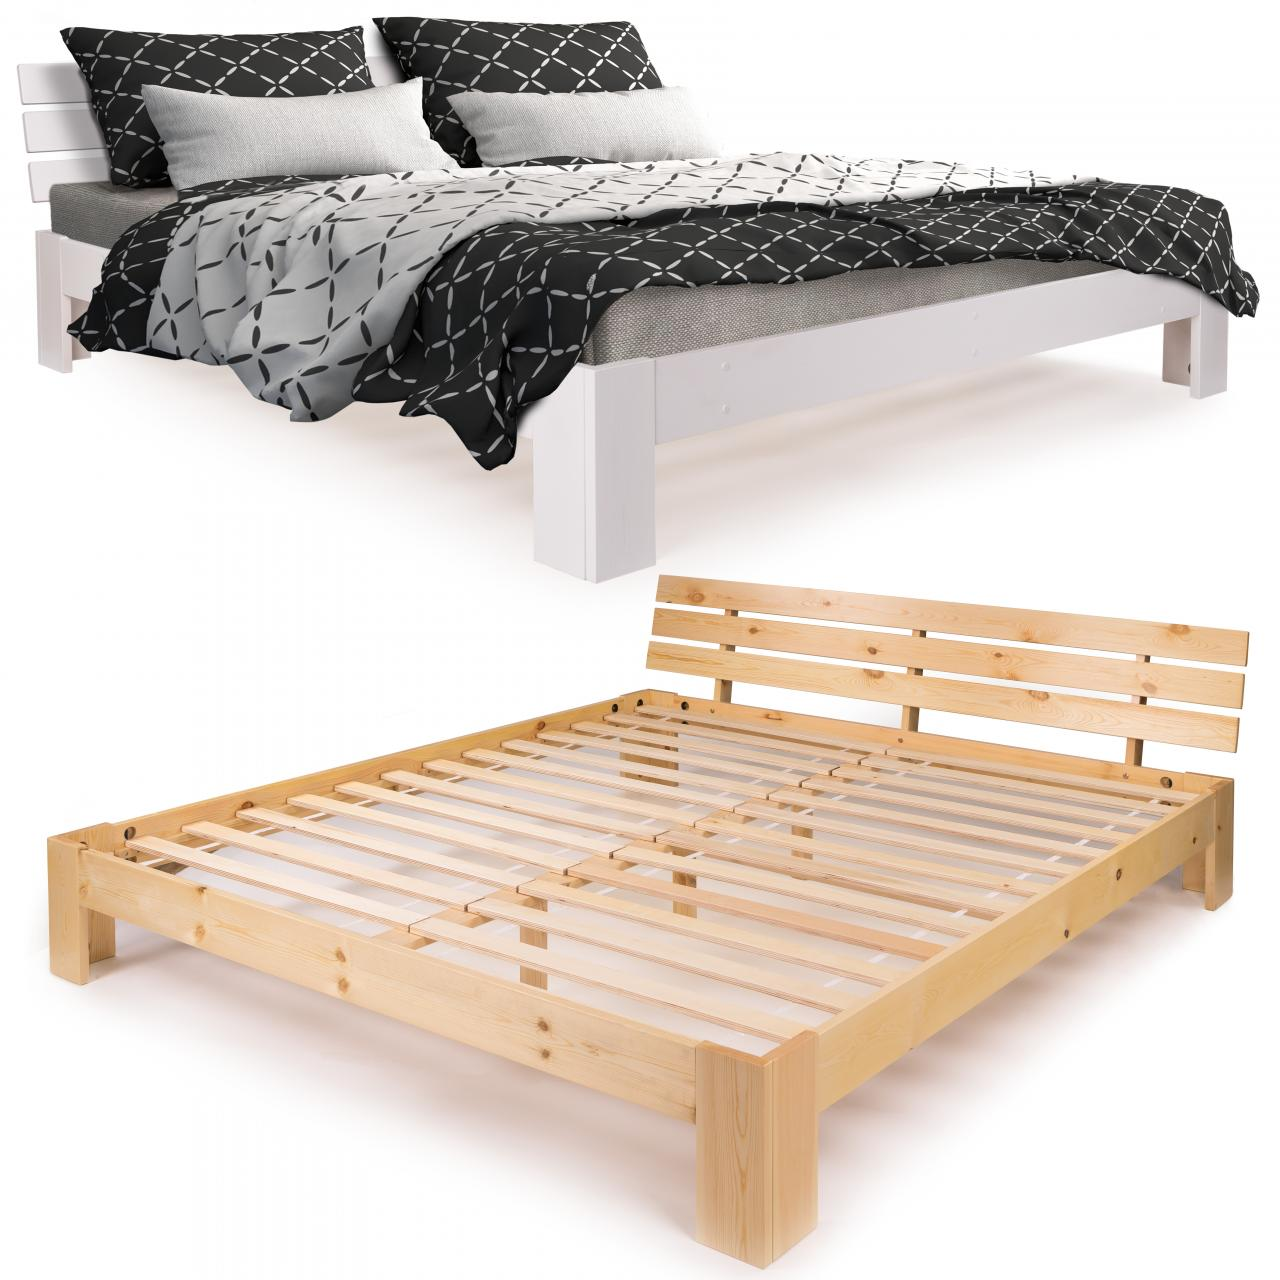 homelux holzbett kiefer doppelbett lattenrost bettrahmen bettgestell massiv ebay. Black Bedroom Furniture Sets. Home Design Ideas